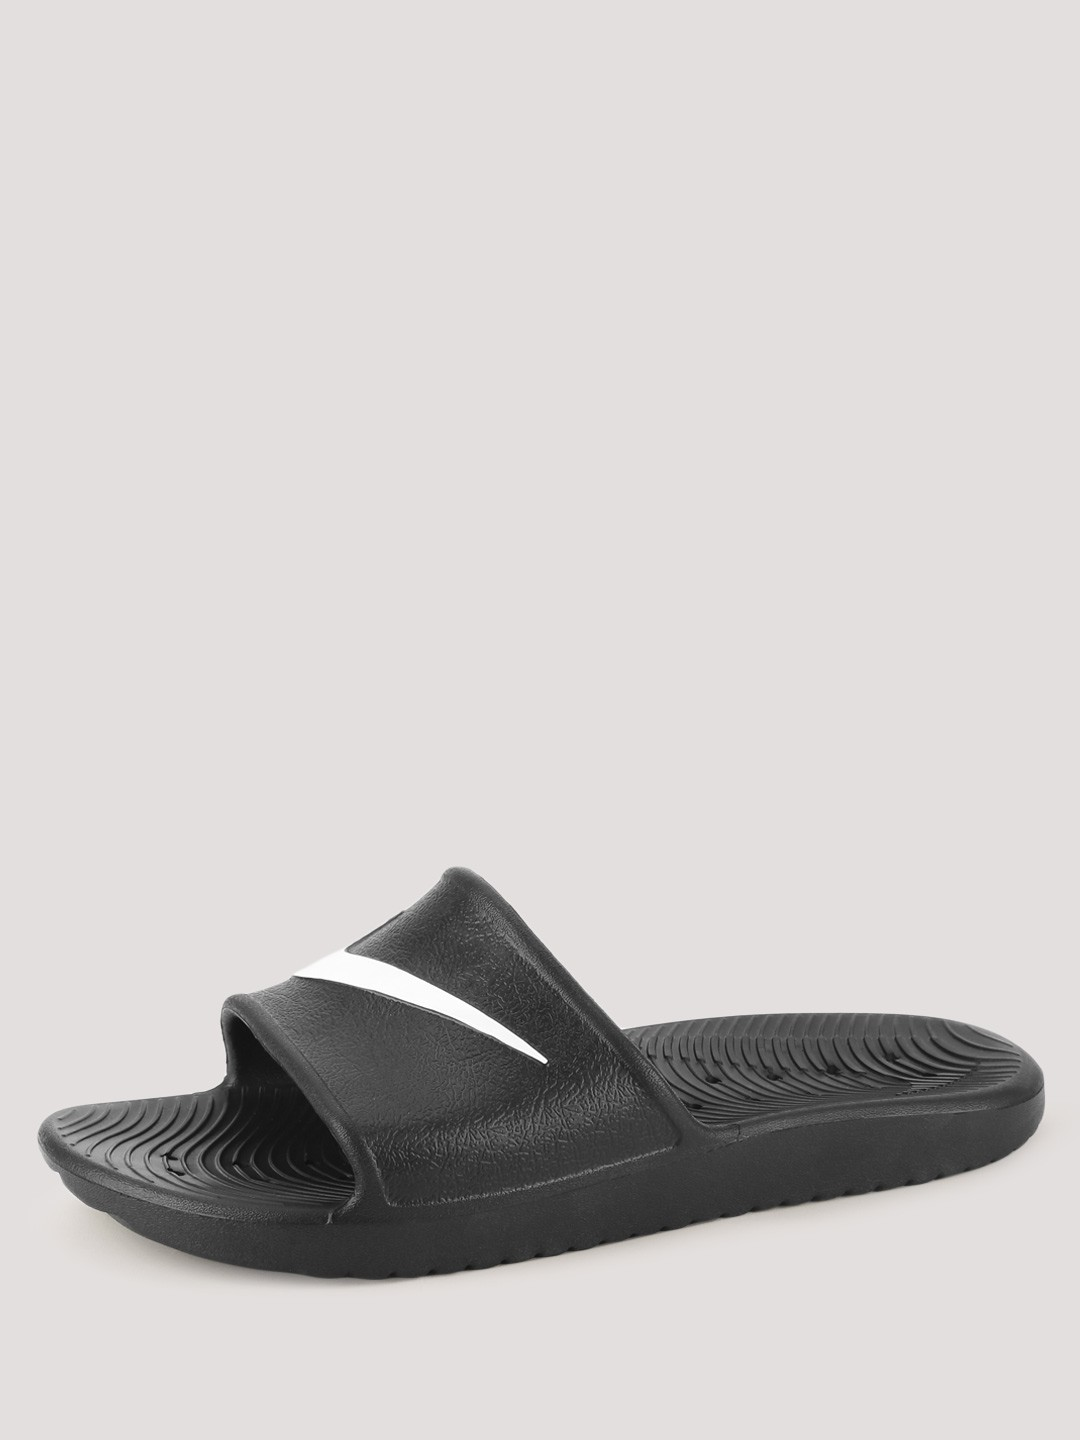 92d9769197c9 Buy nike flip flops at discount